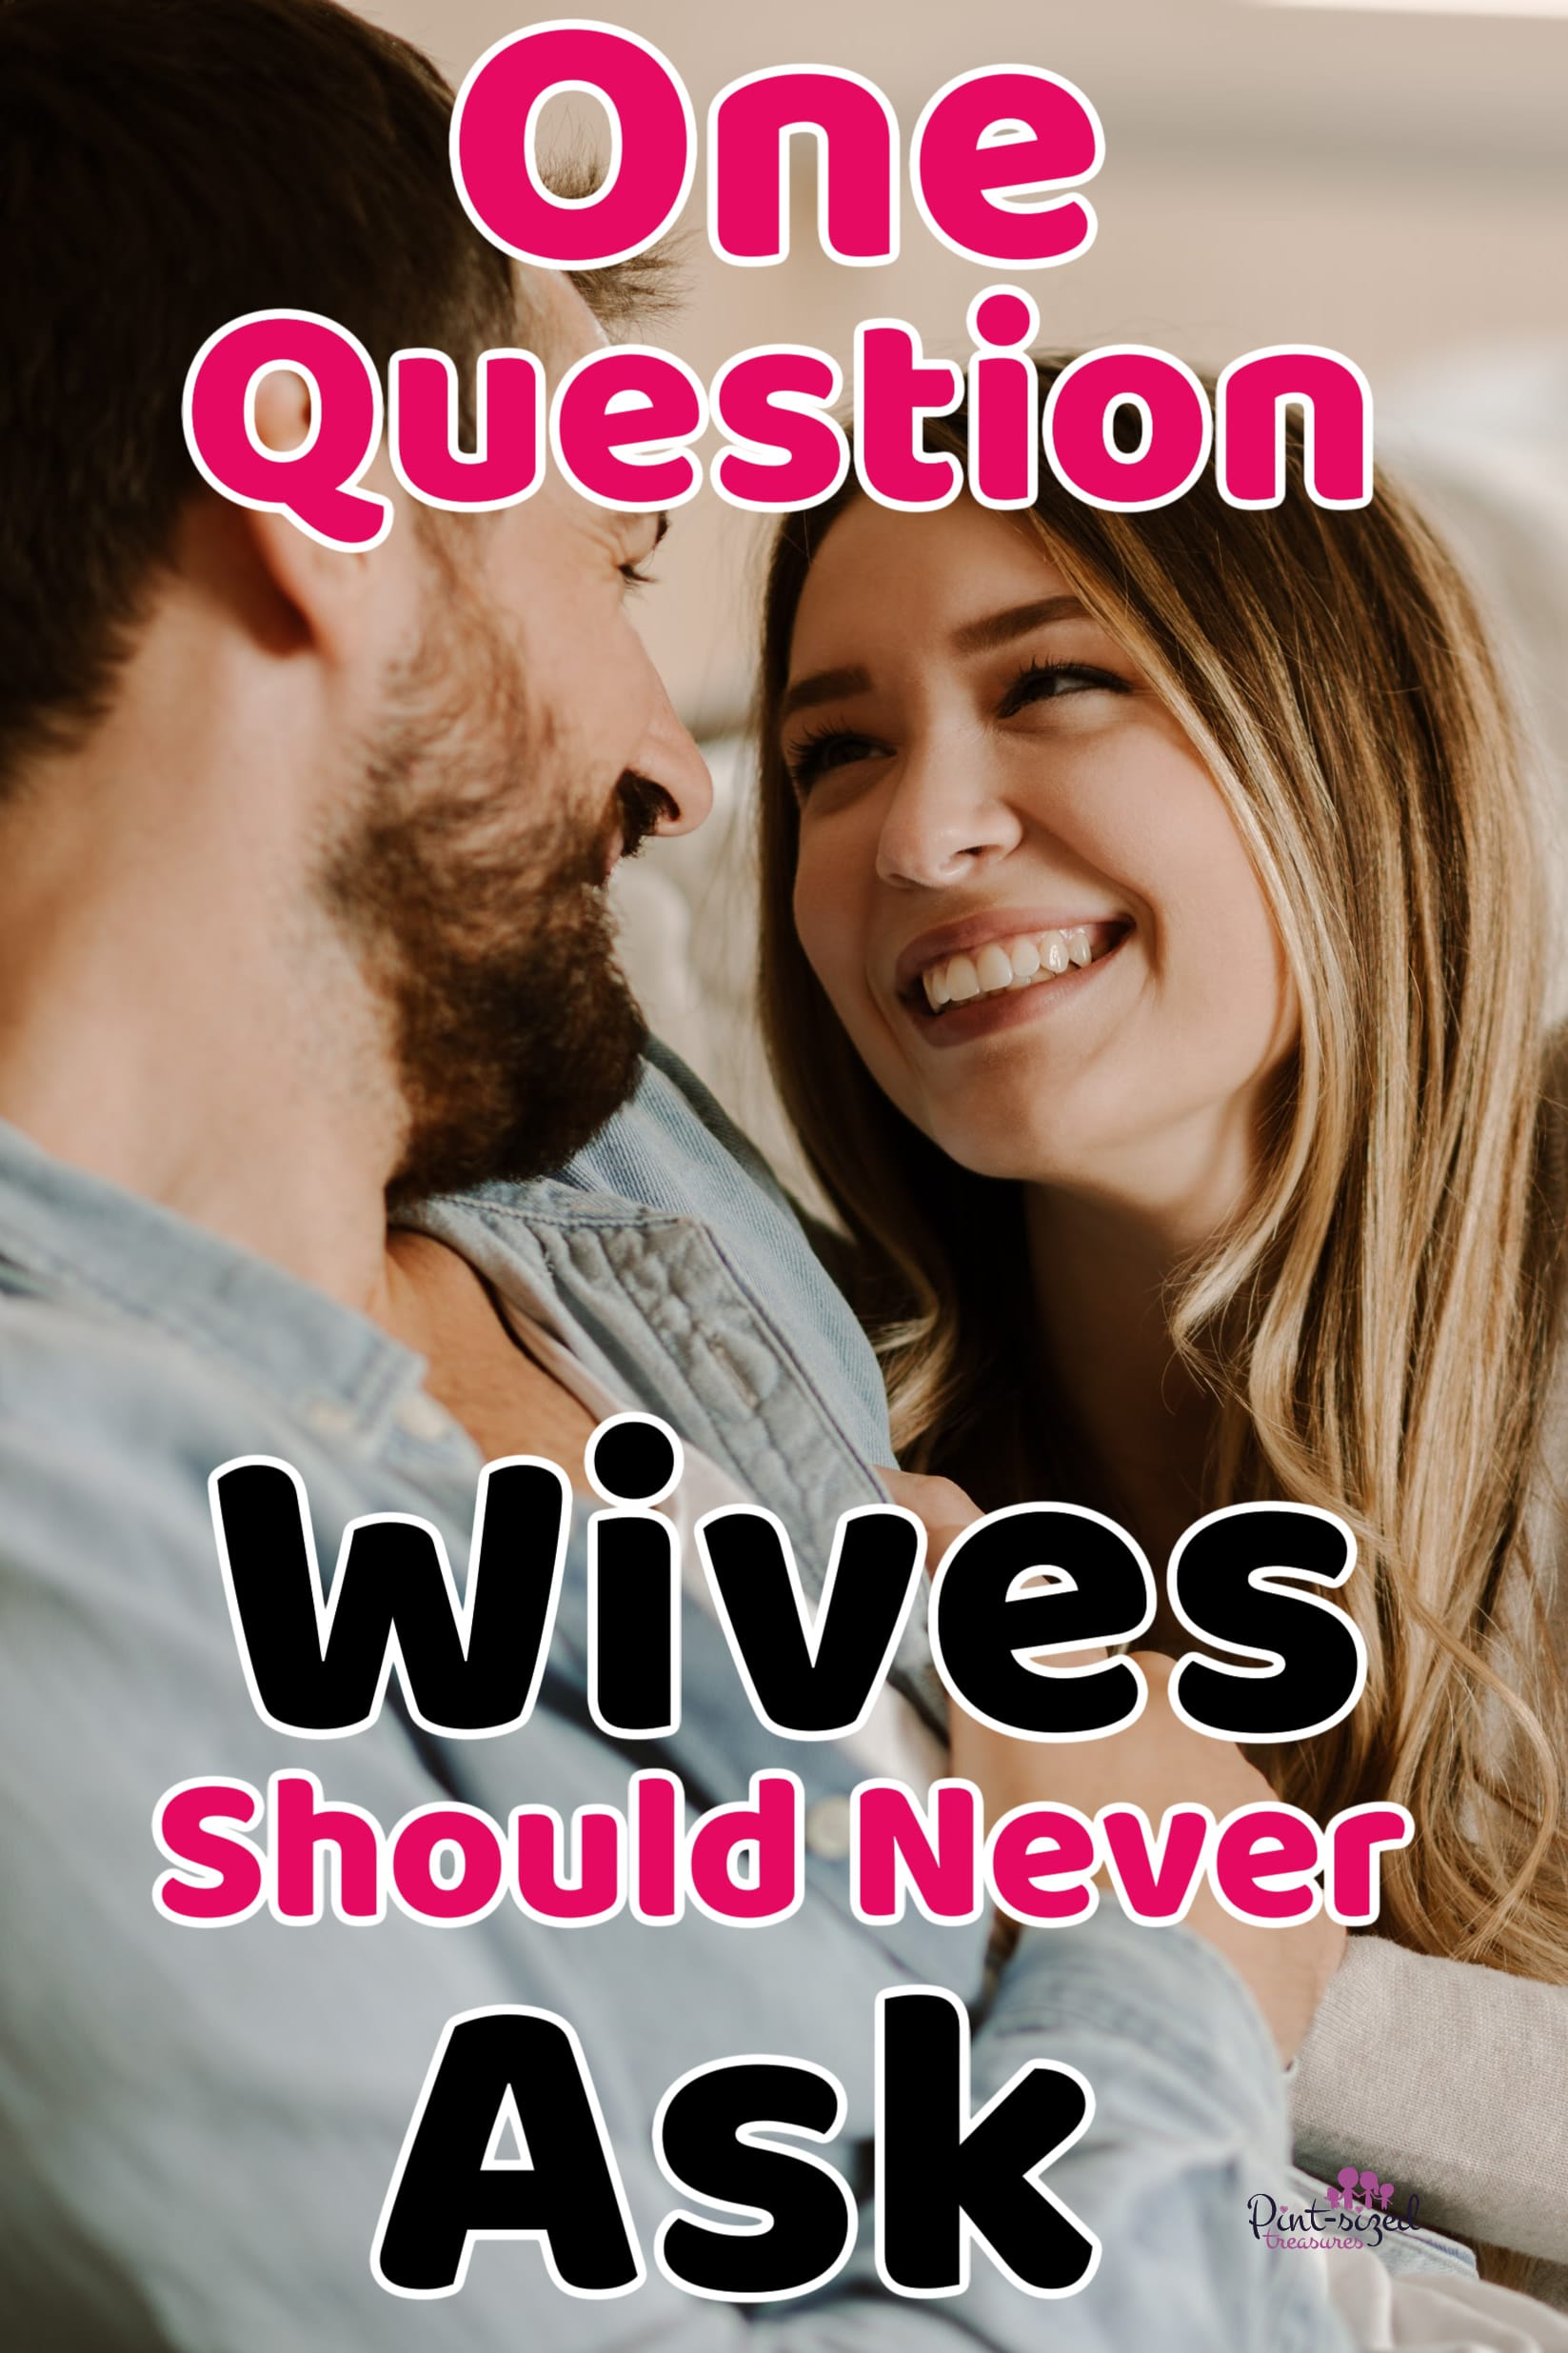 husband and wife talking about the question wives should never ask